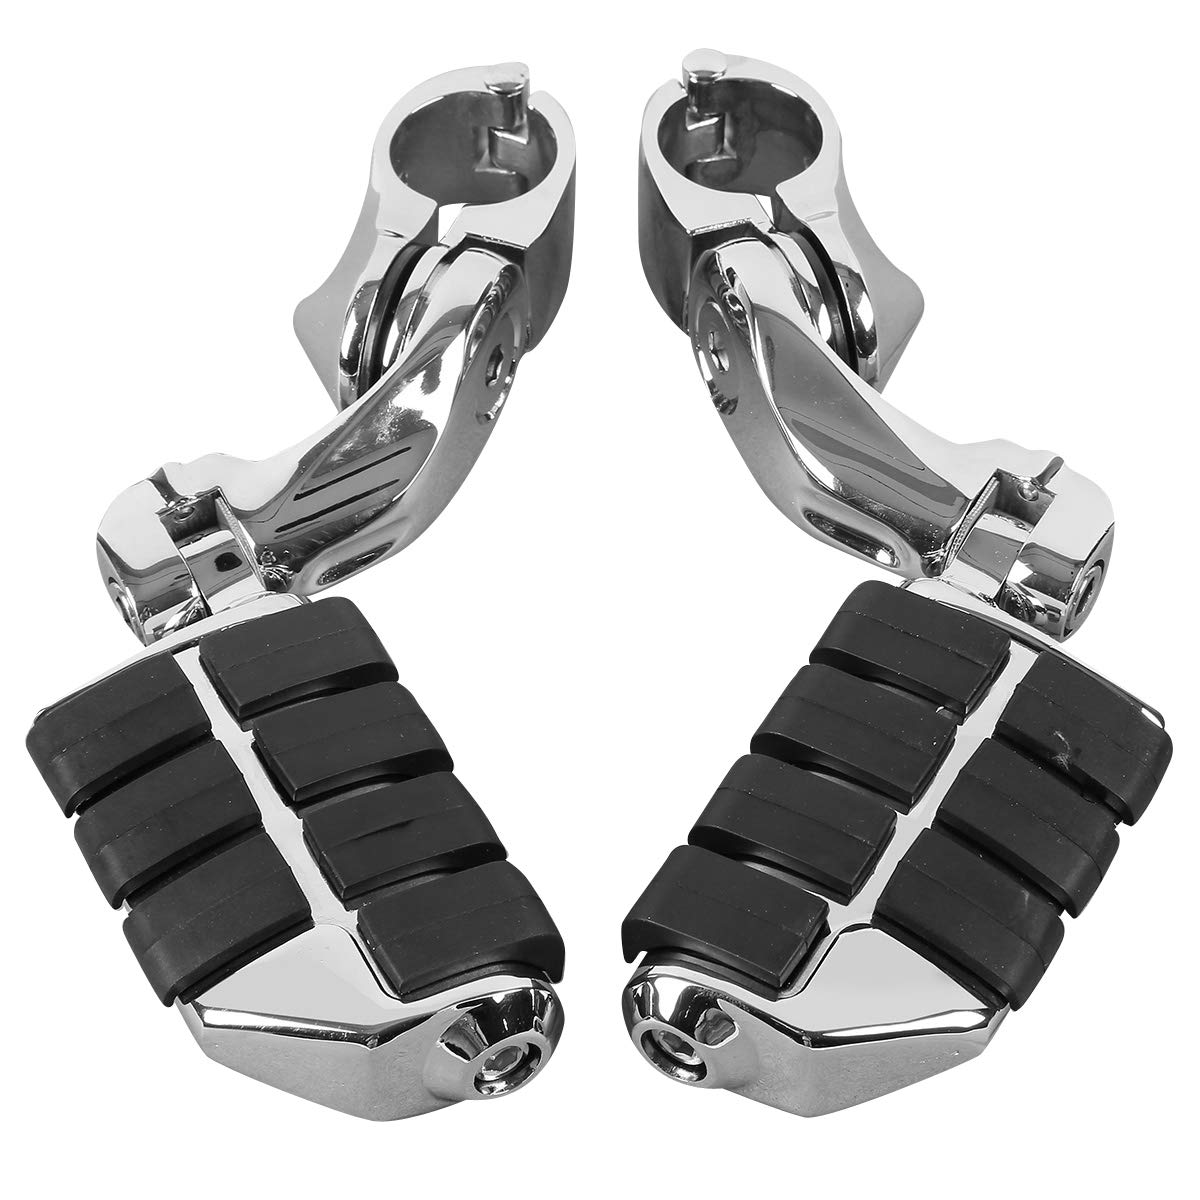 with black rubber grips XMT-MOTO Short Angled Adjustable Highway Footpegs Kit Fits for Motorcycle w//1.25 engine guards,Chrome plated